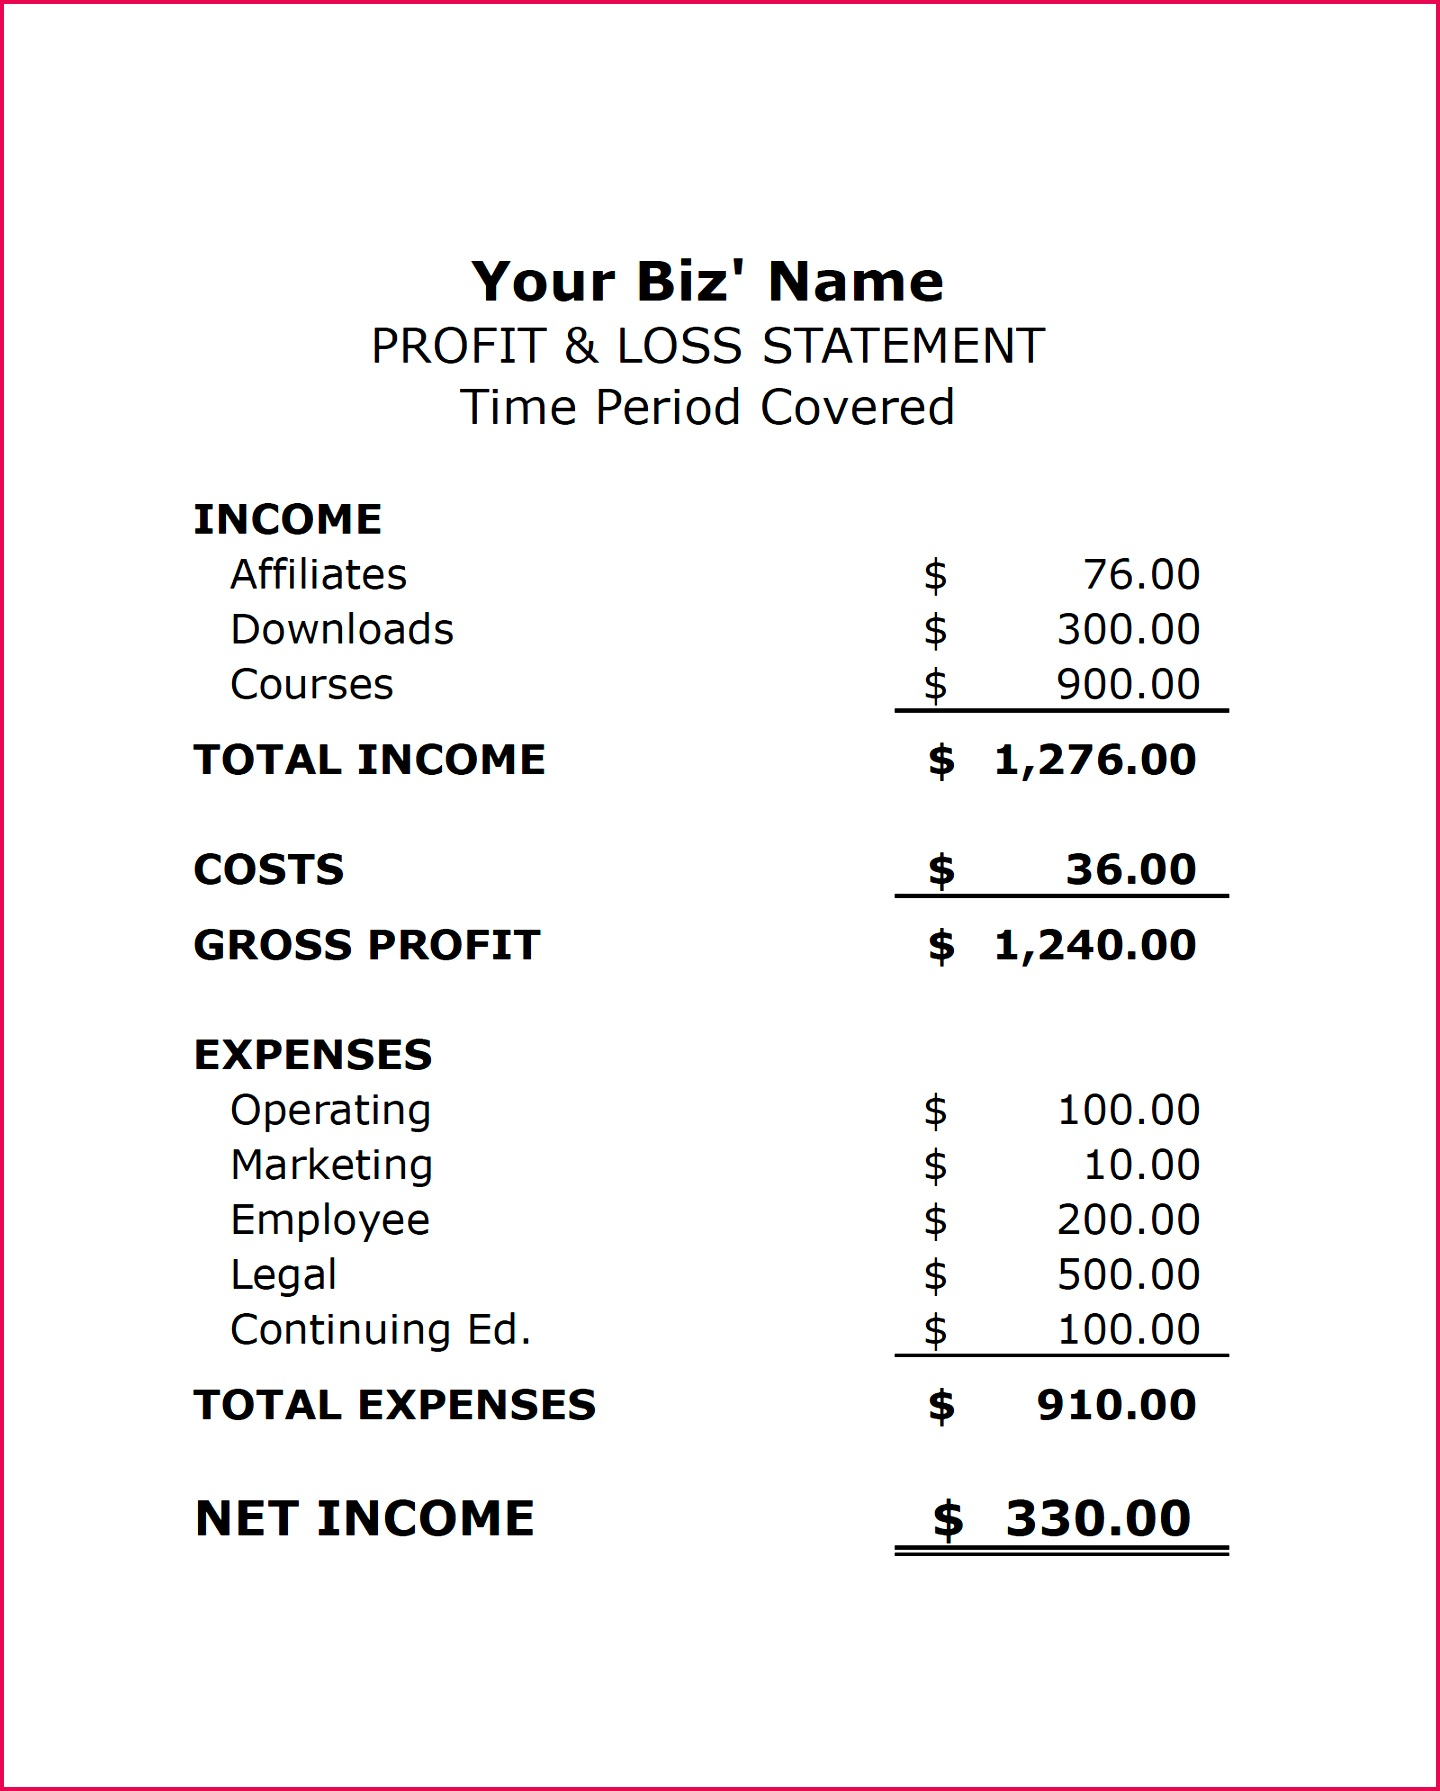 In e and Expense Statement Excel Unique How to Create A Basic Profit & Loss Statement Free Download the